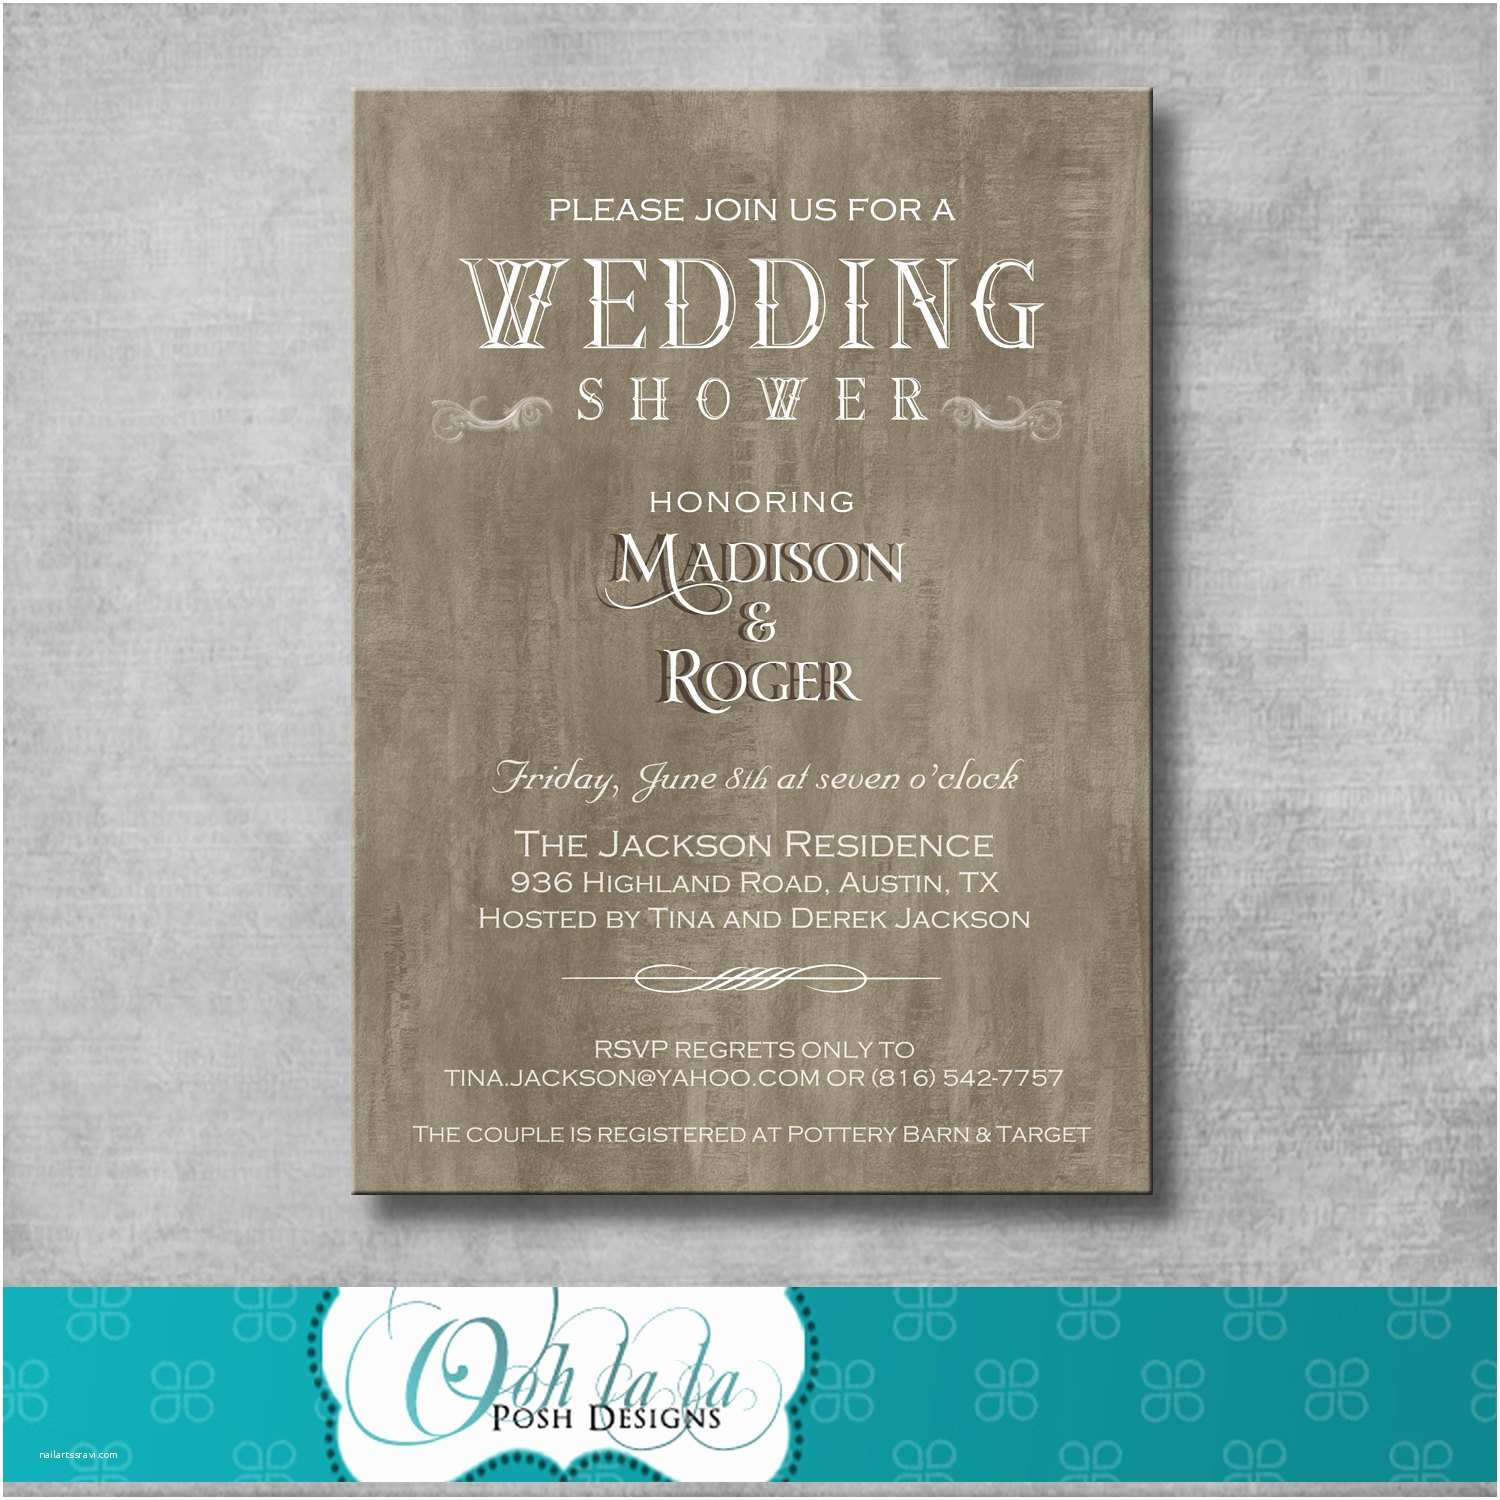 Making Wedding Invitations at Home Wonderful Rustic Wedding Shower Invitations